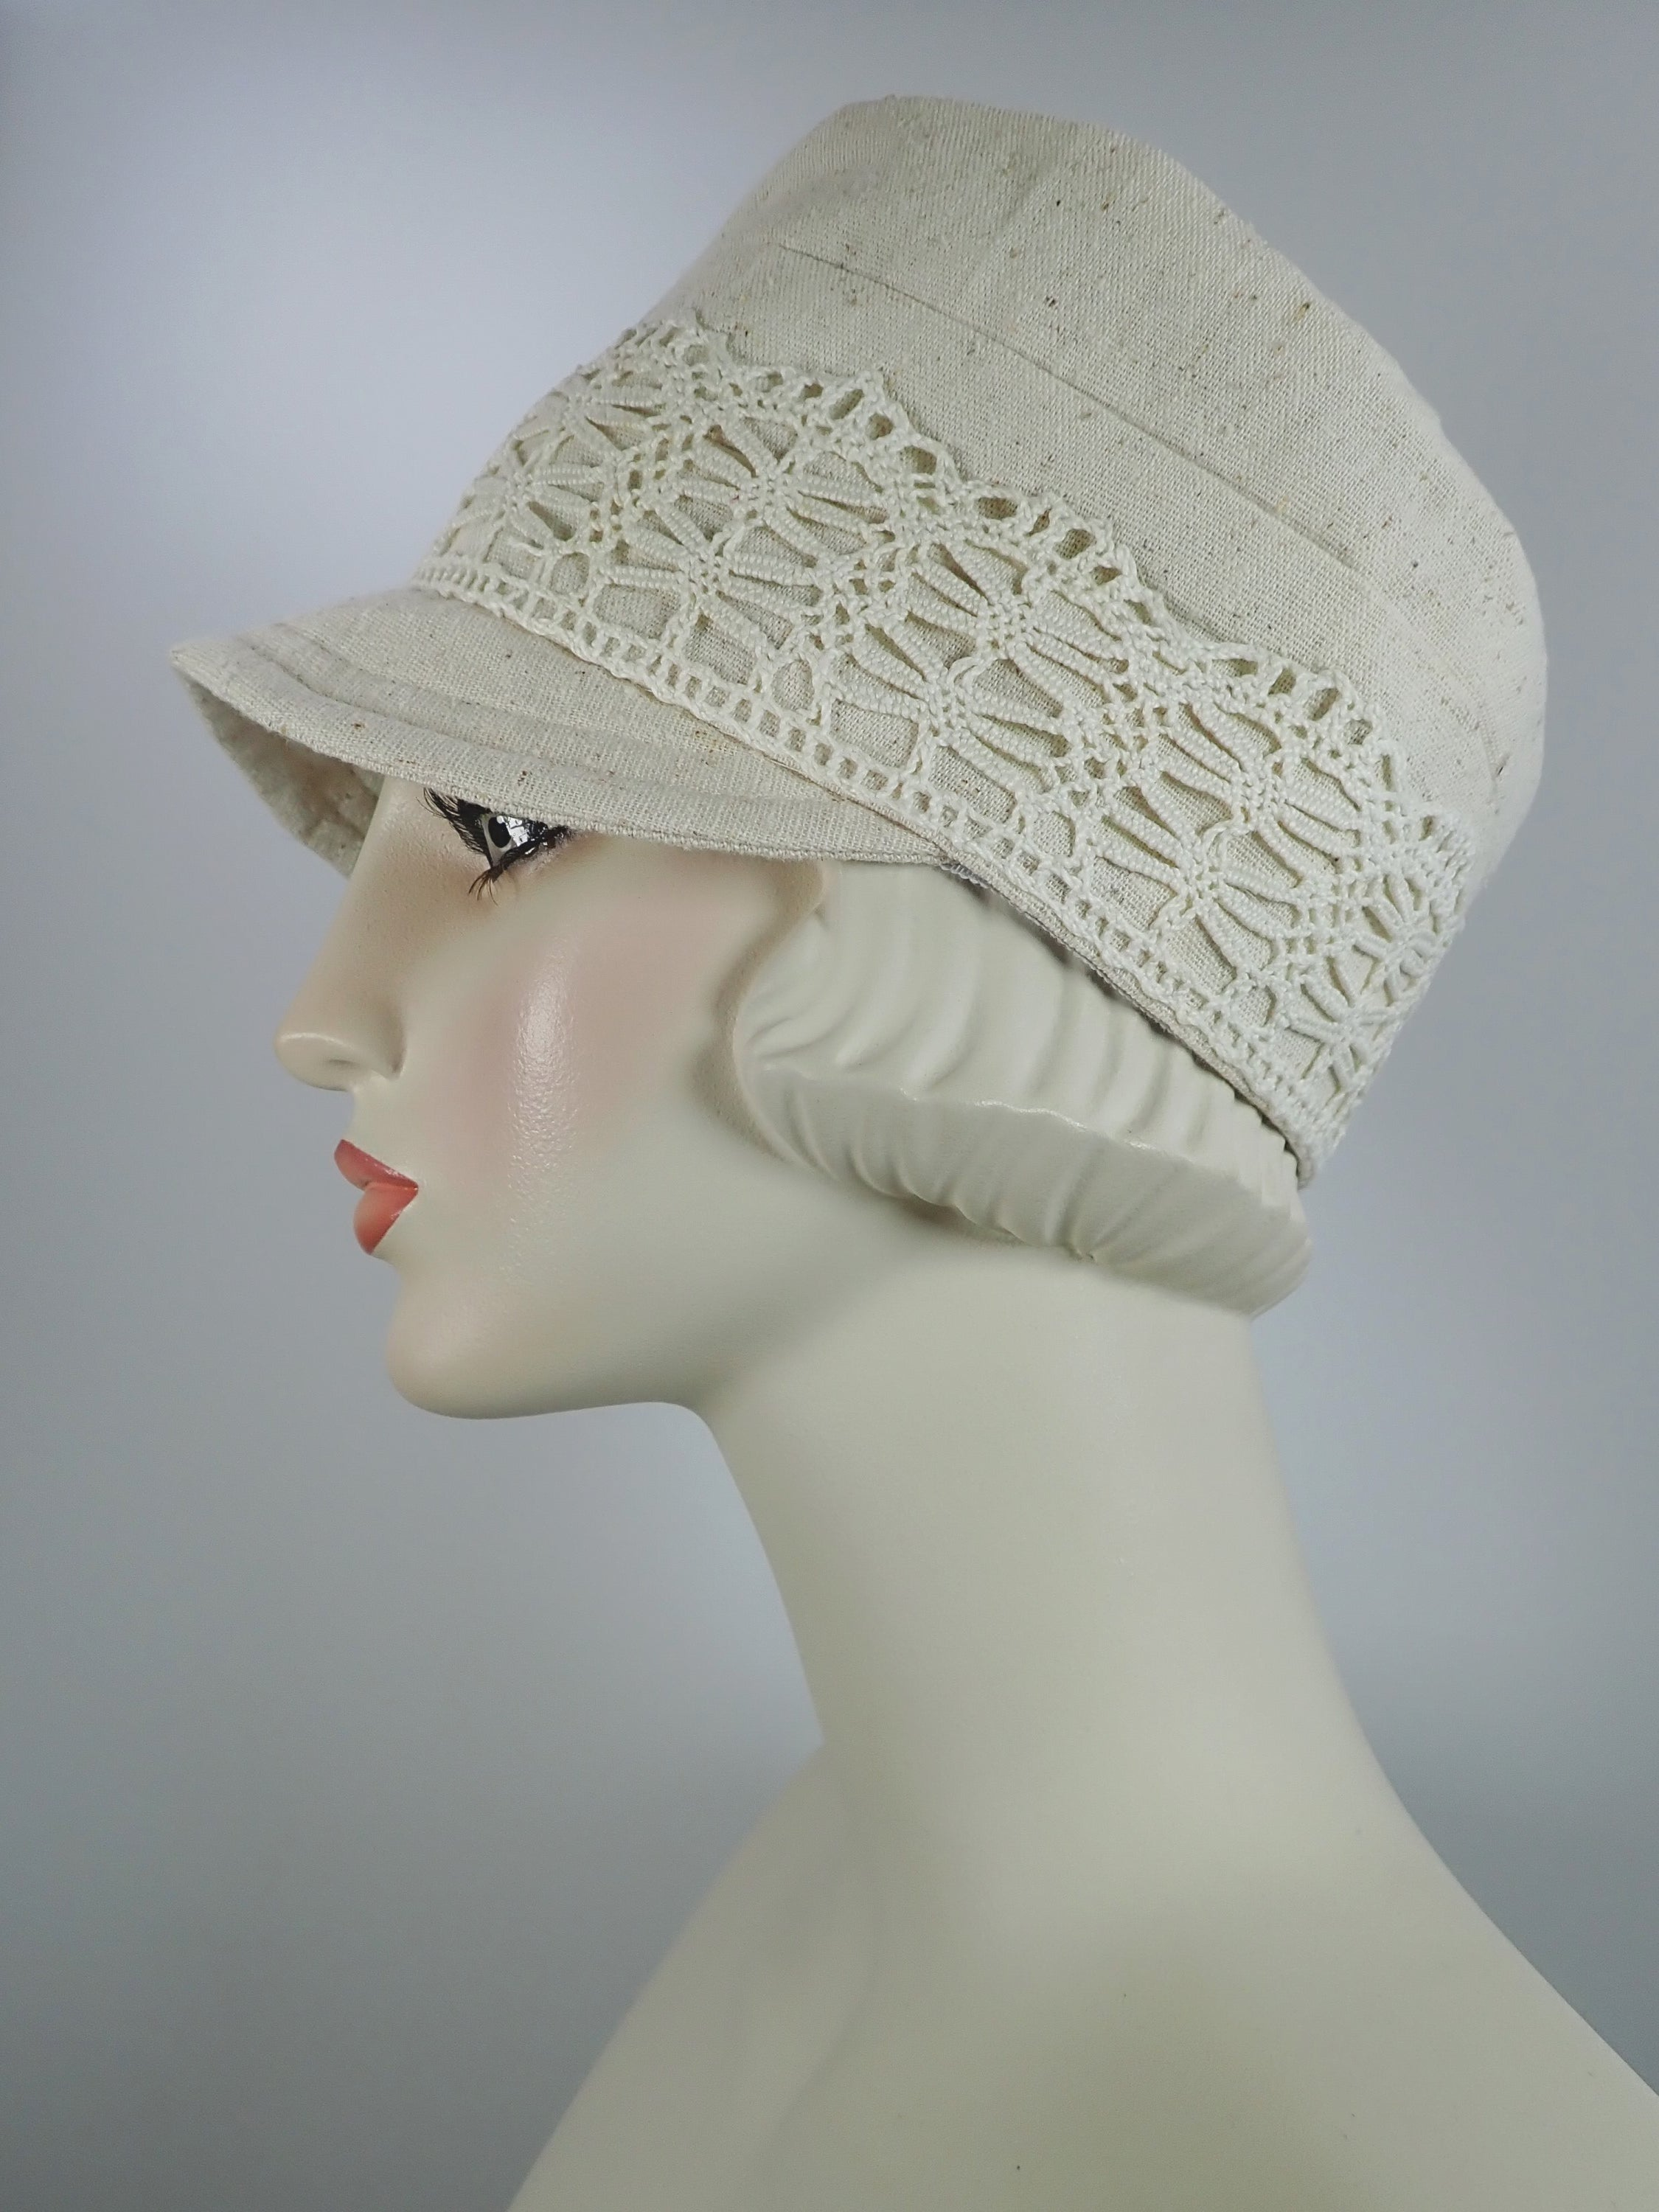 Womens Summer Cream Nubby Woven Fabric Military Newsboy Cap - Womens Visor Travel Hat, Summer Cool Hat